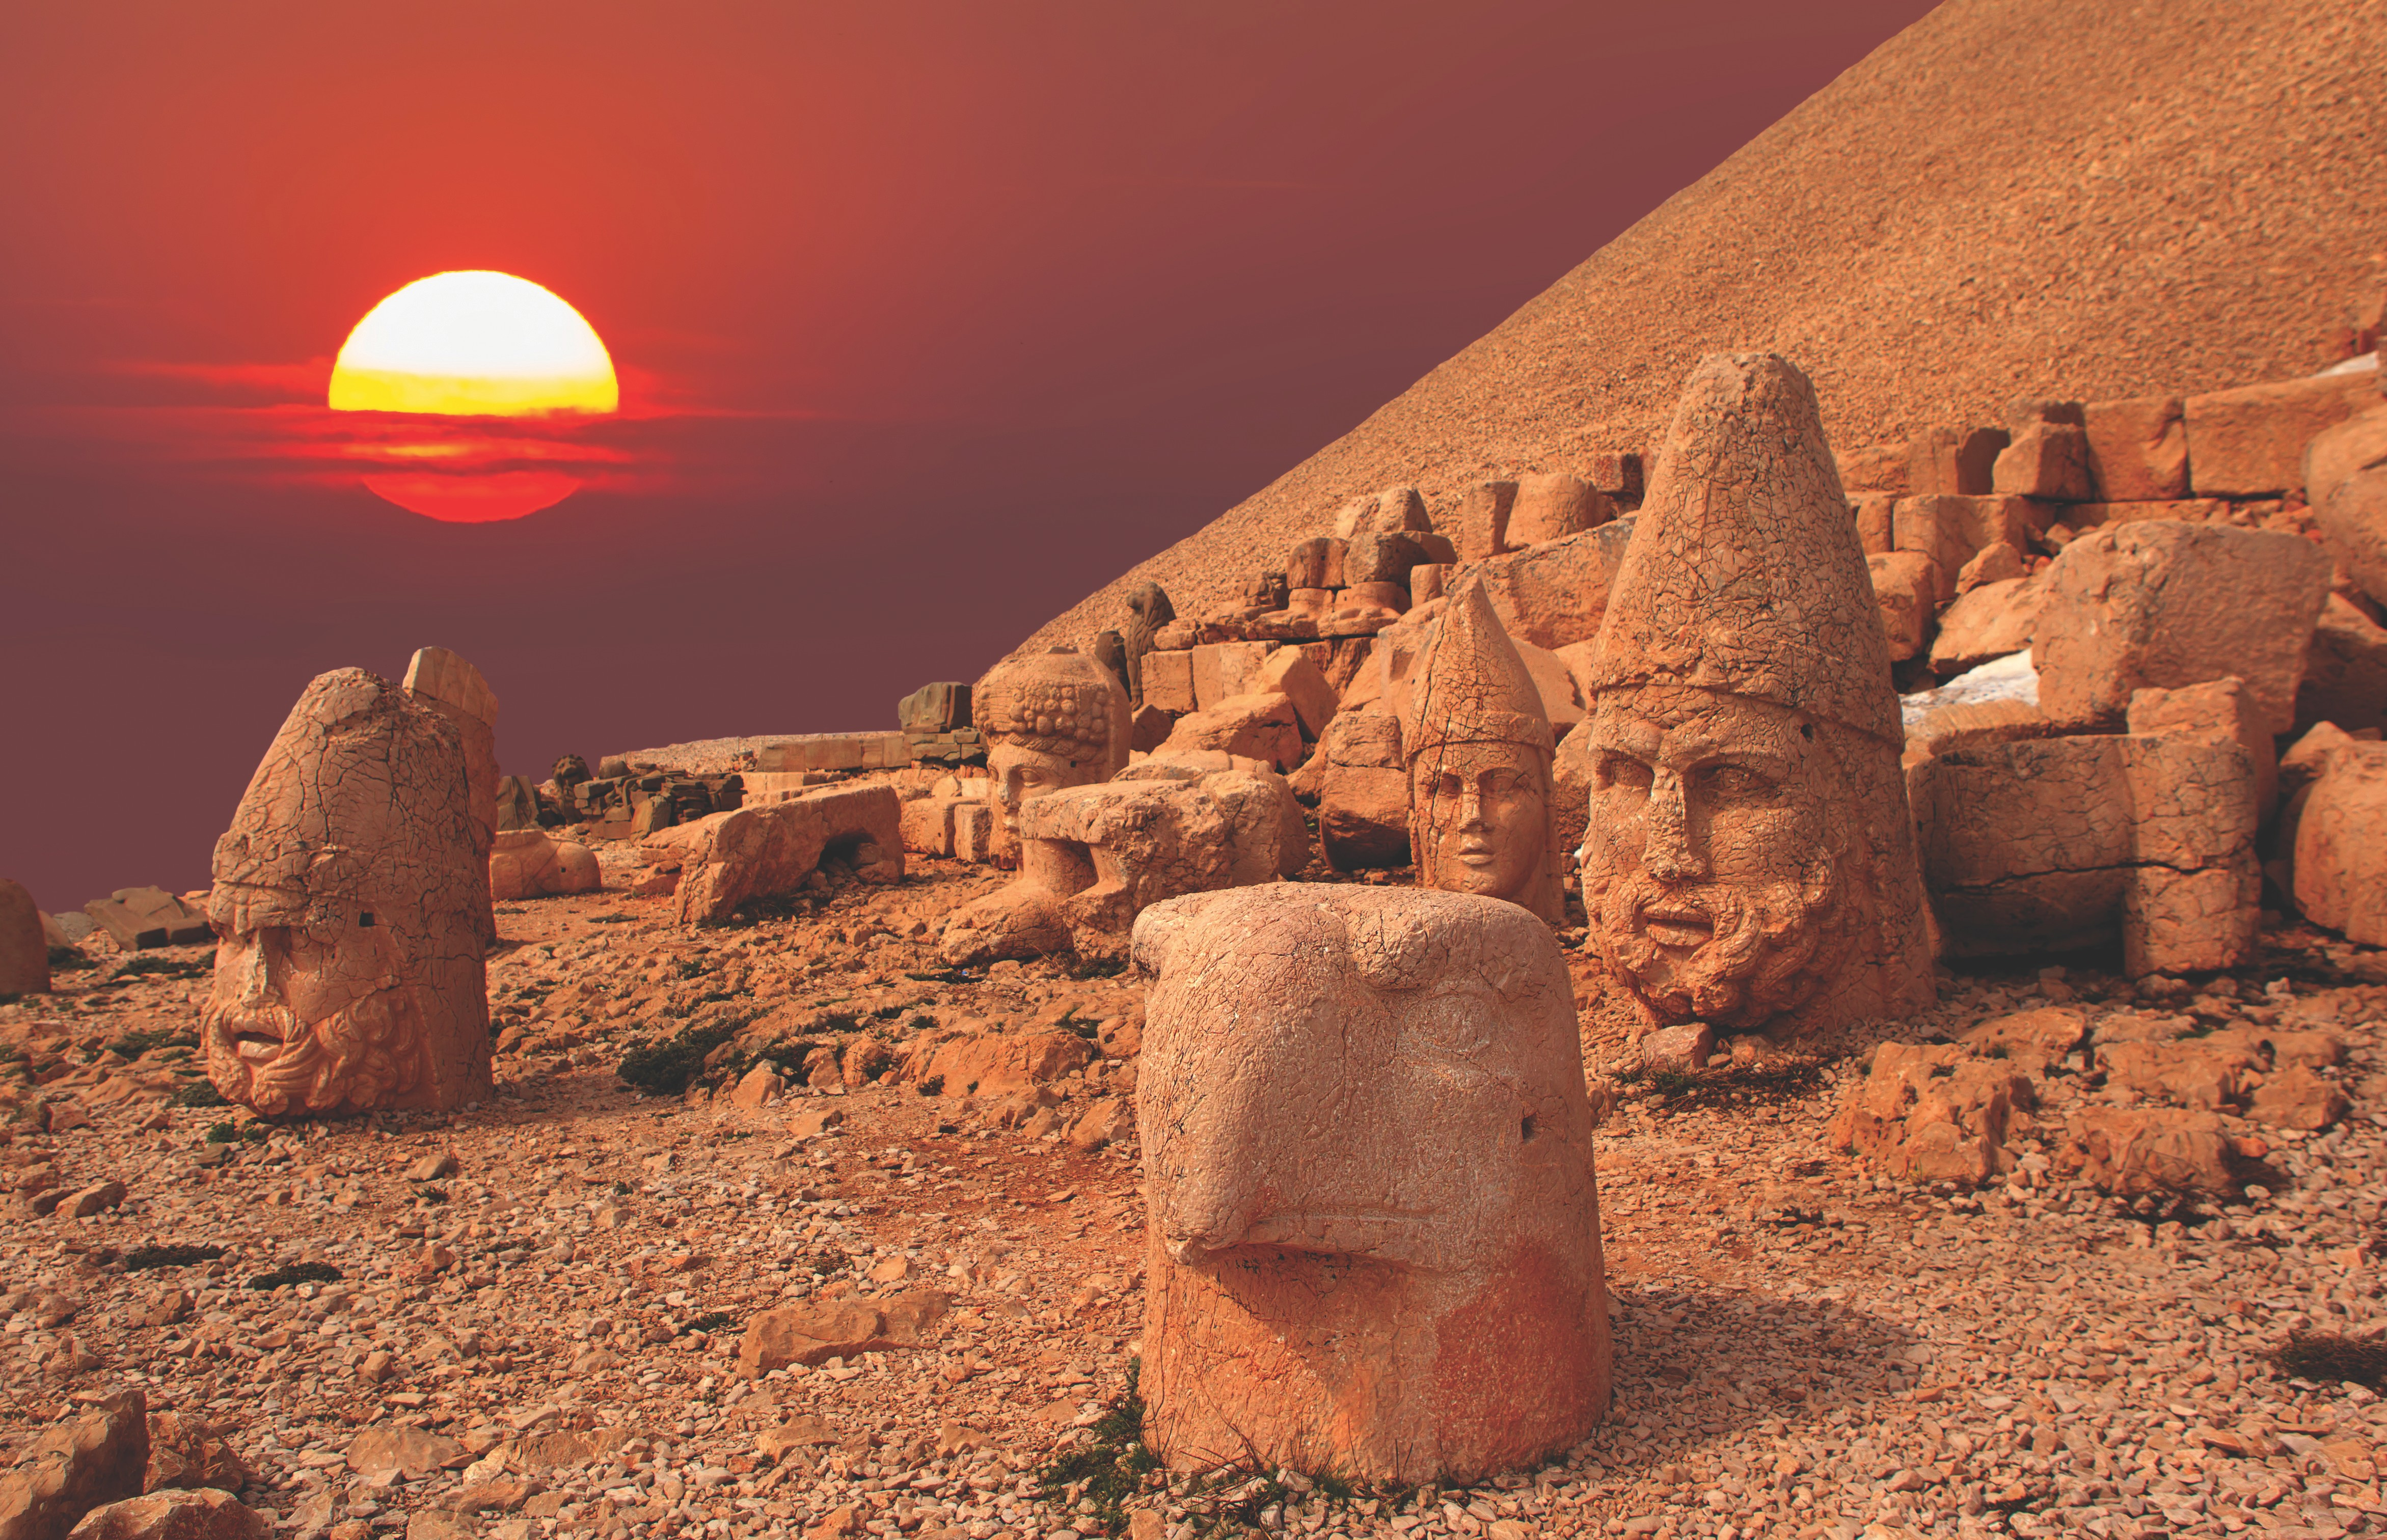 Nemrut Mountain, the most beautiful sunset in the world